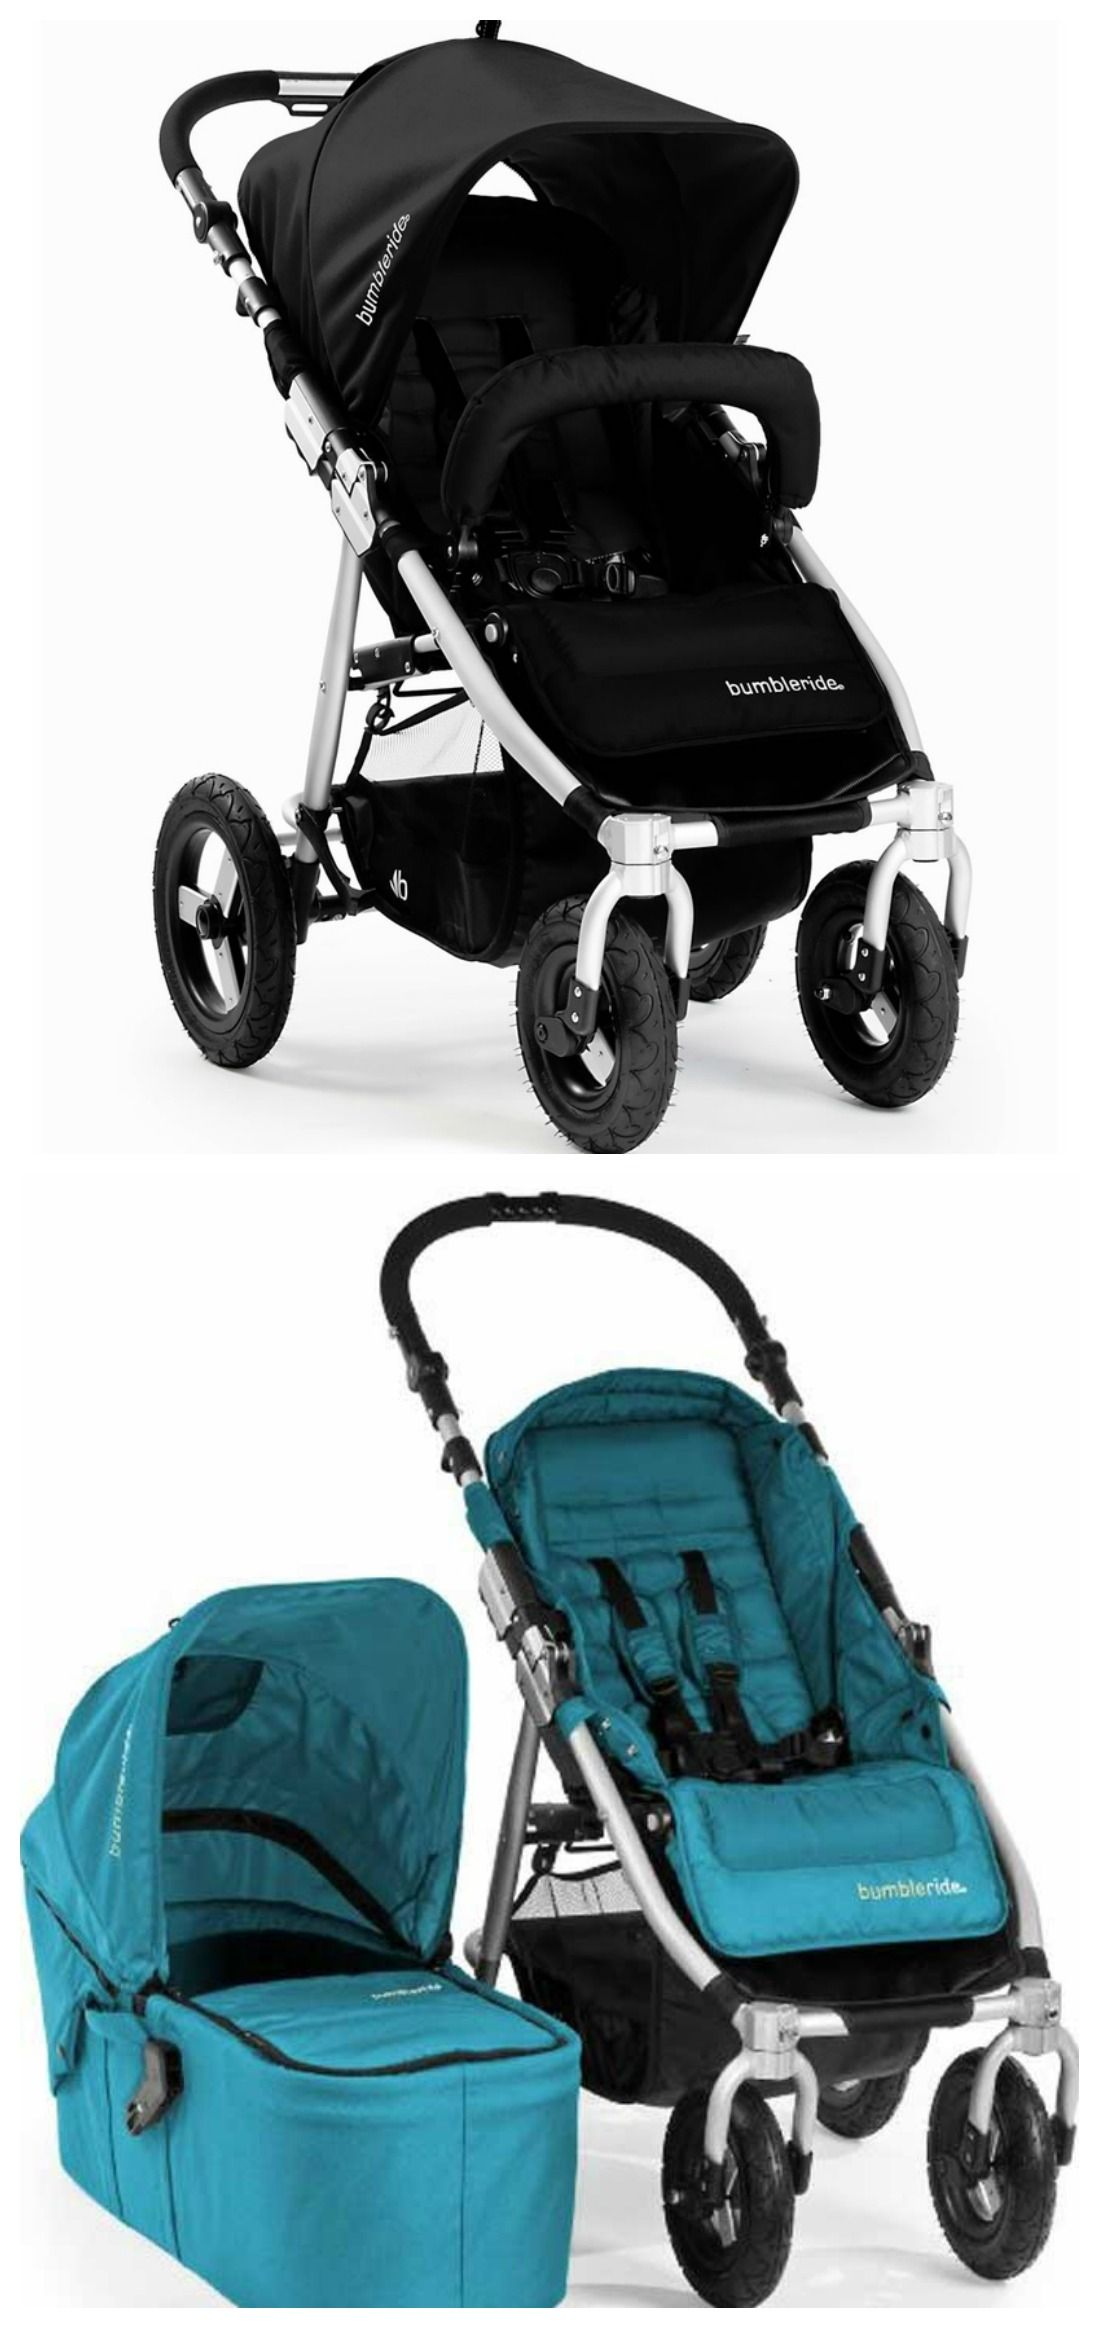 Our Top 10 Standard Strollers include the Bumbleride In 4 Why We Love It